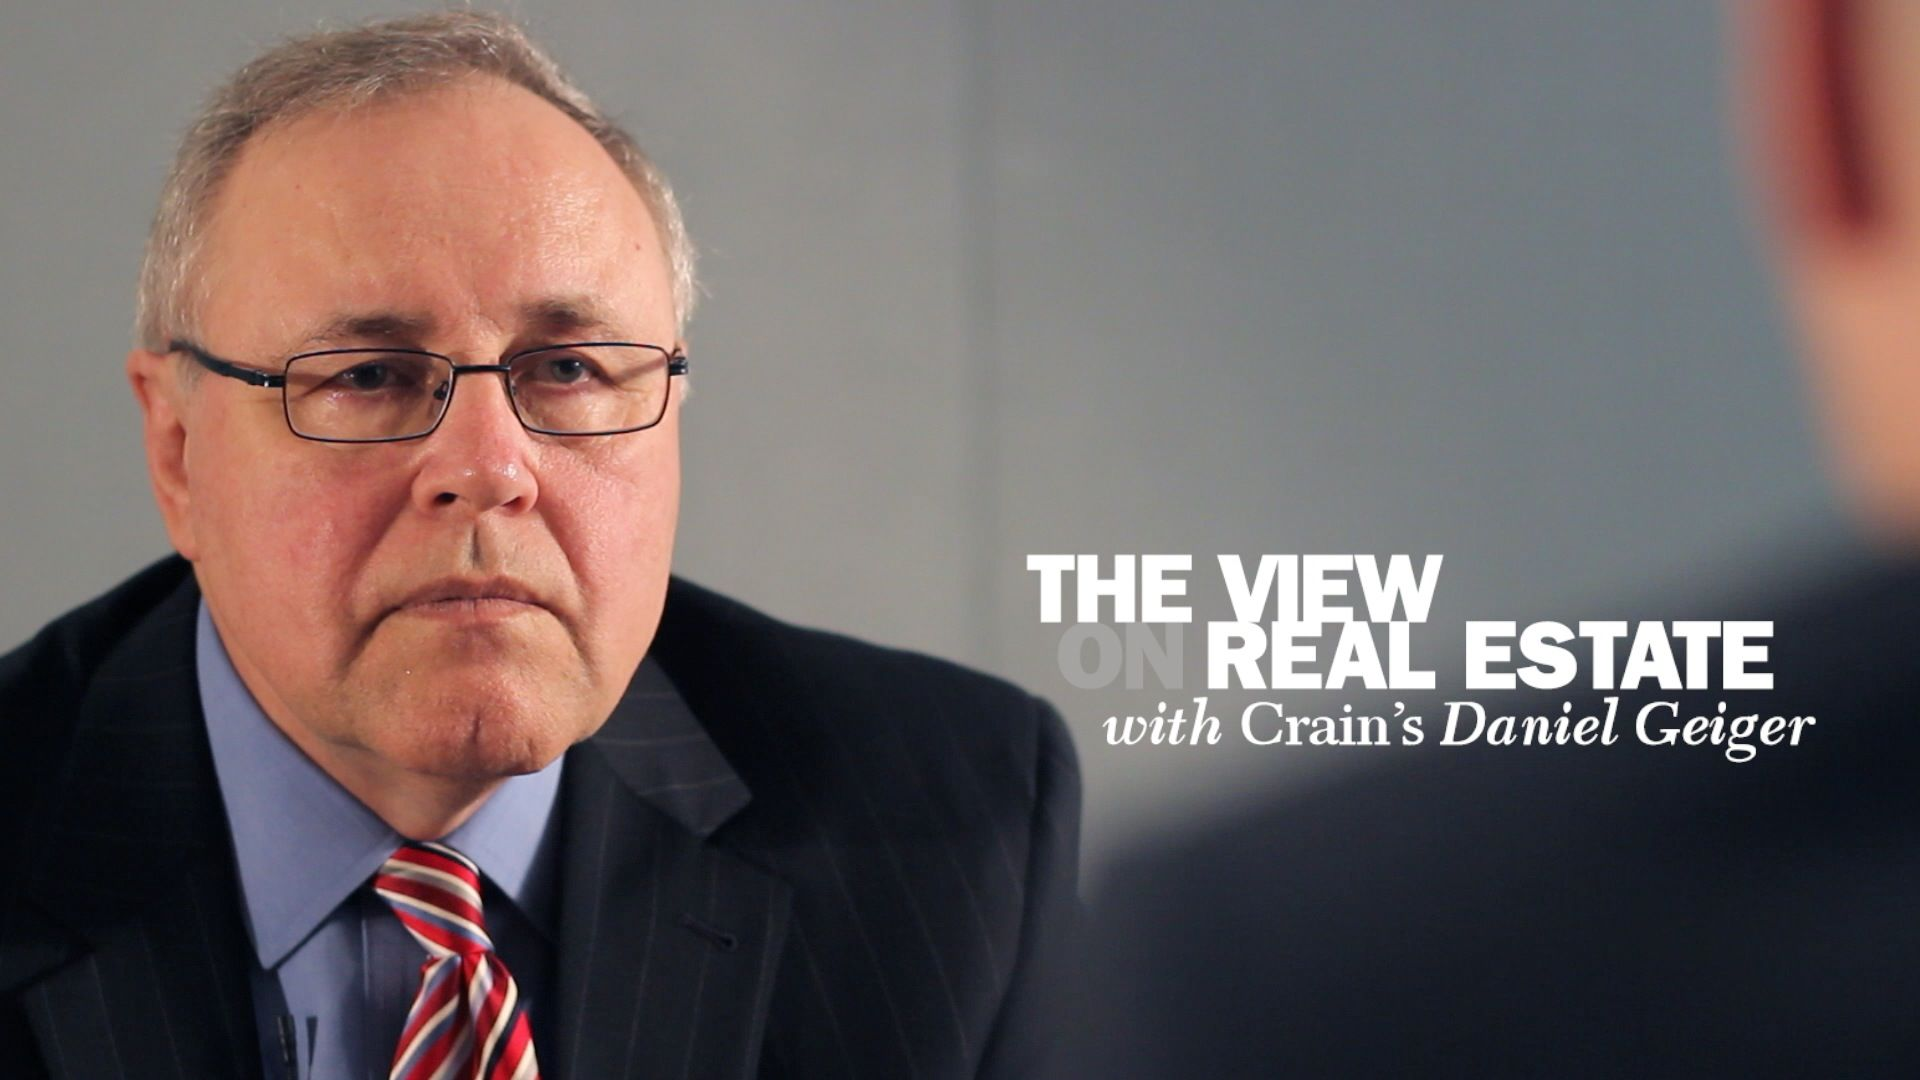 The View on Real Estate: REBNY's Steven Spinola discusses taxes